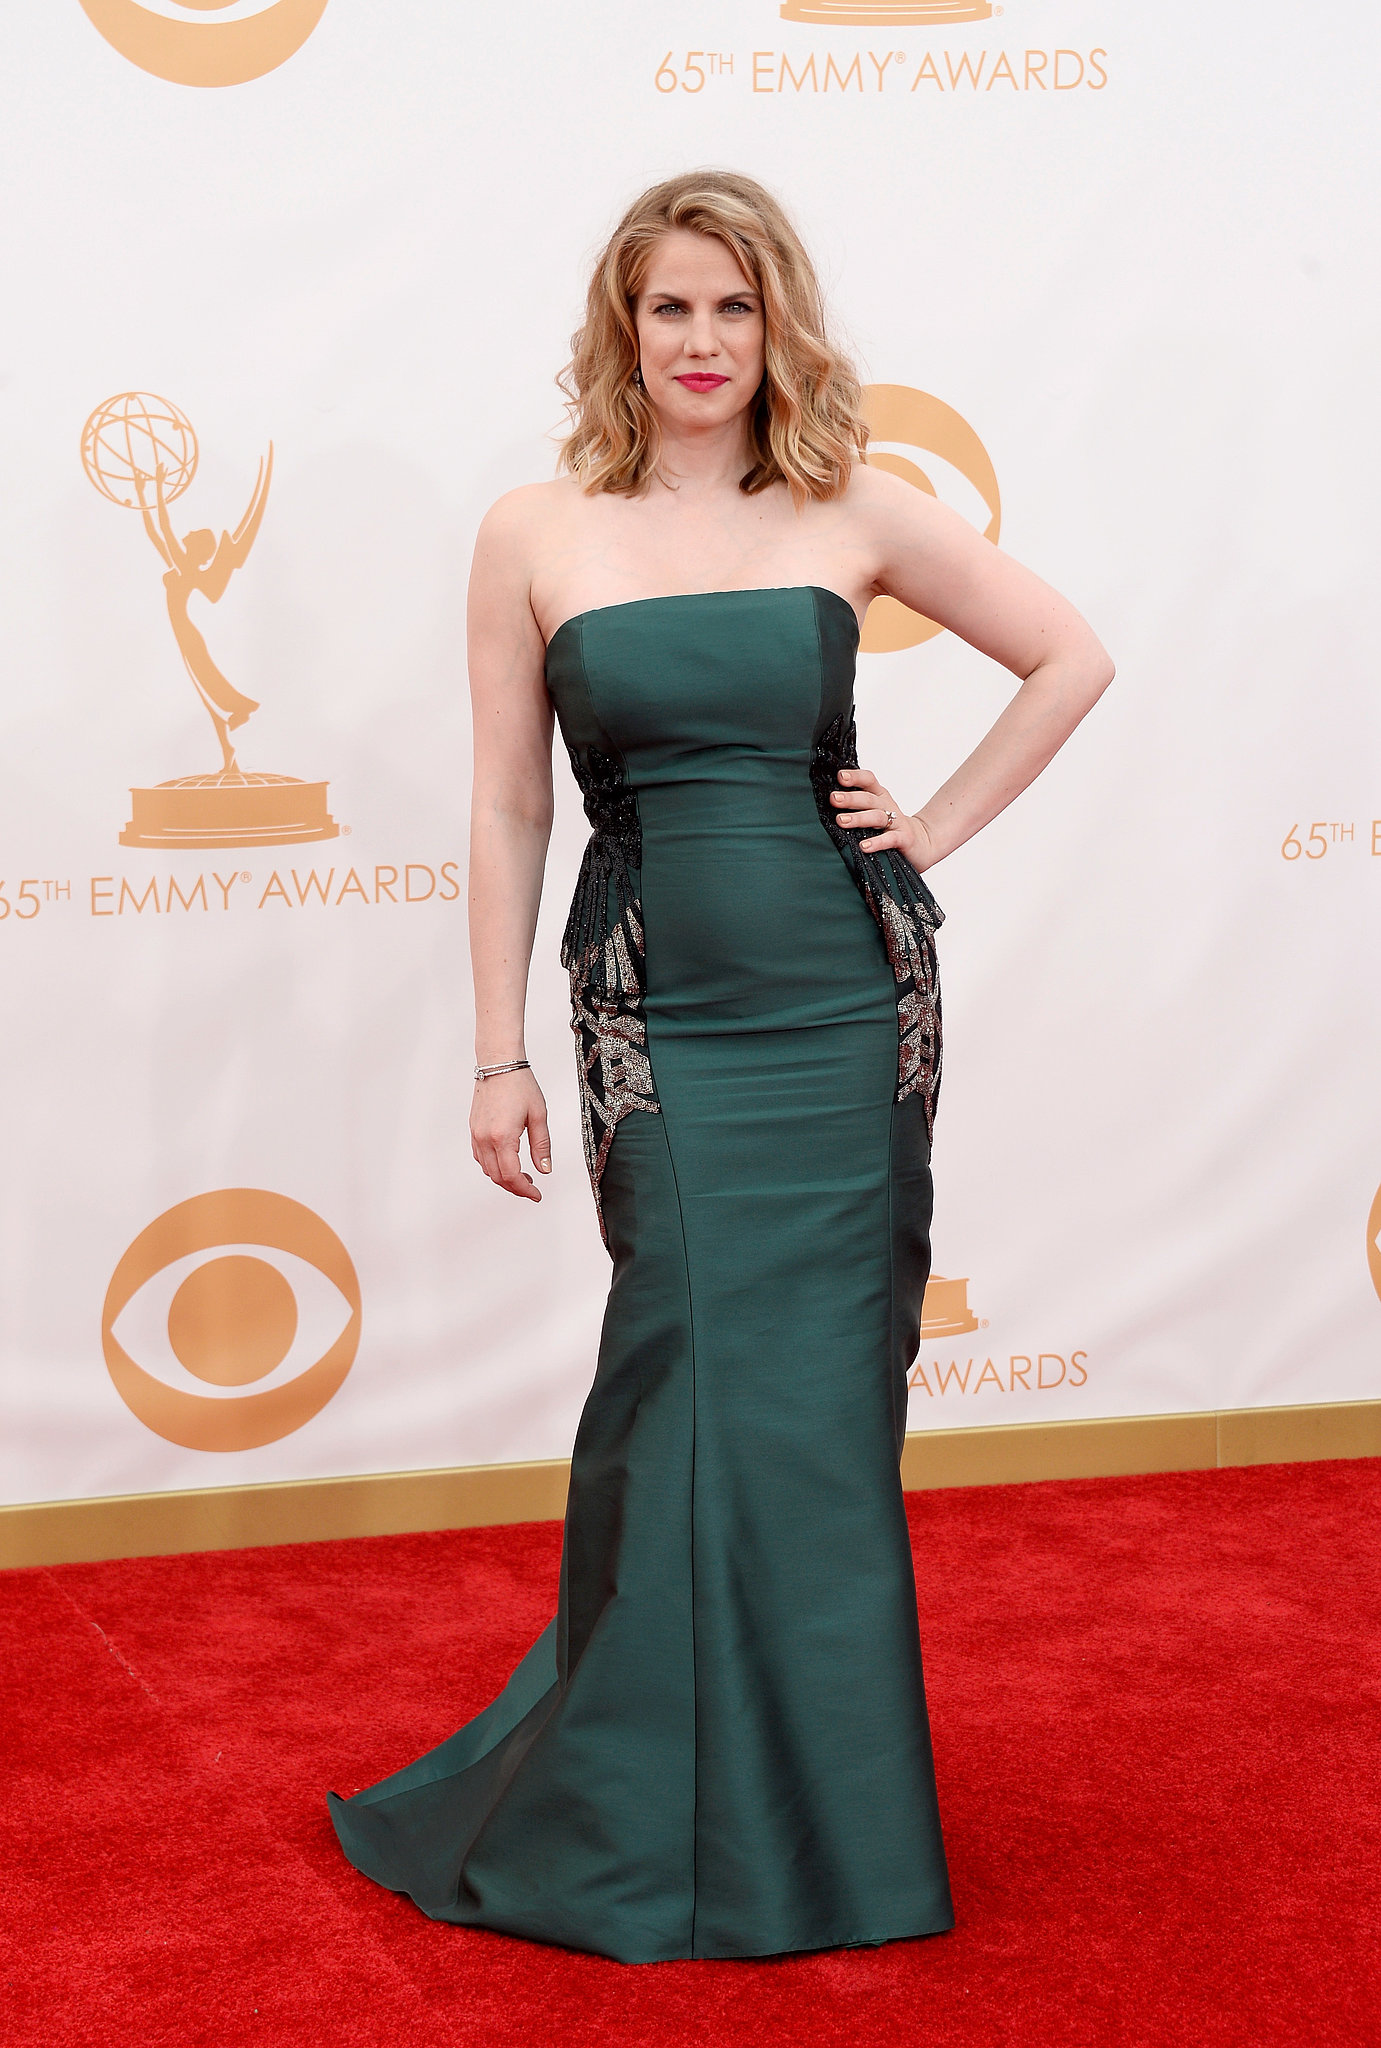 Veep's Anna Chlumsky stepped out for the 2013 Emmys.